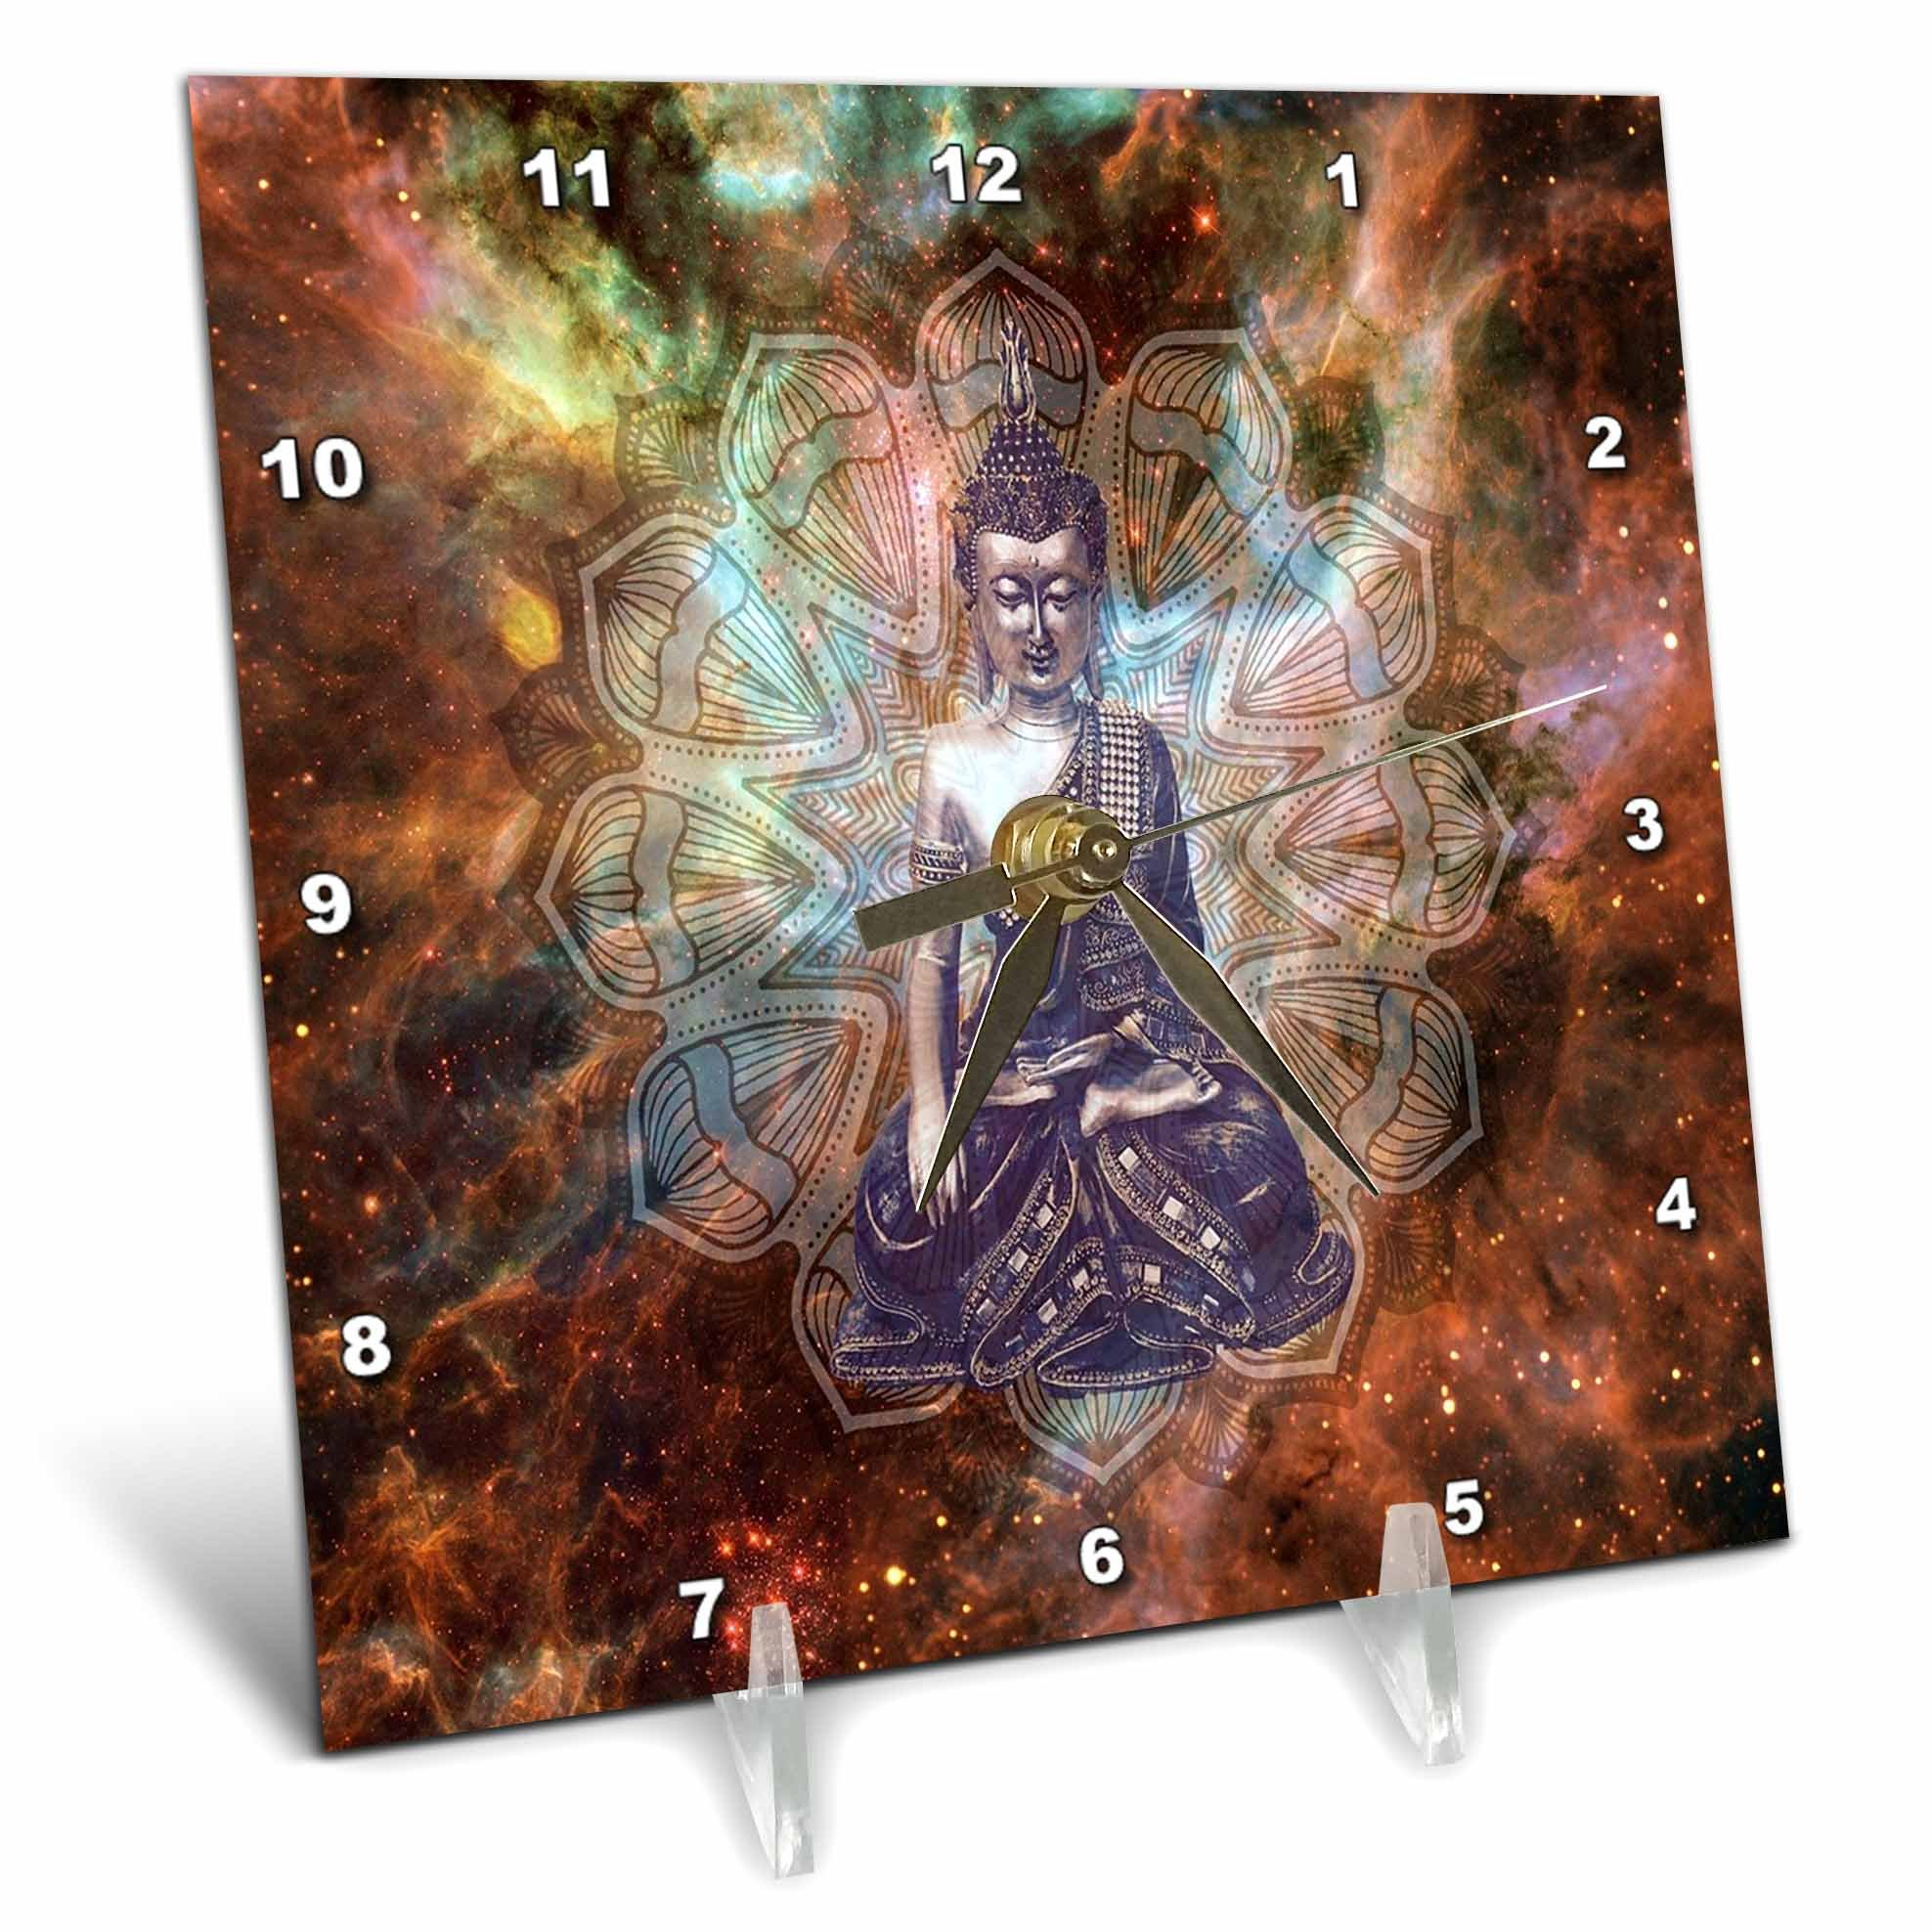 3dRose Religion - Image of Buddha From India Against Colorful Galaxy - 6x6 Desk Clock (dc_279886_1)